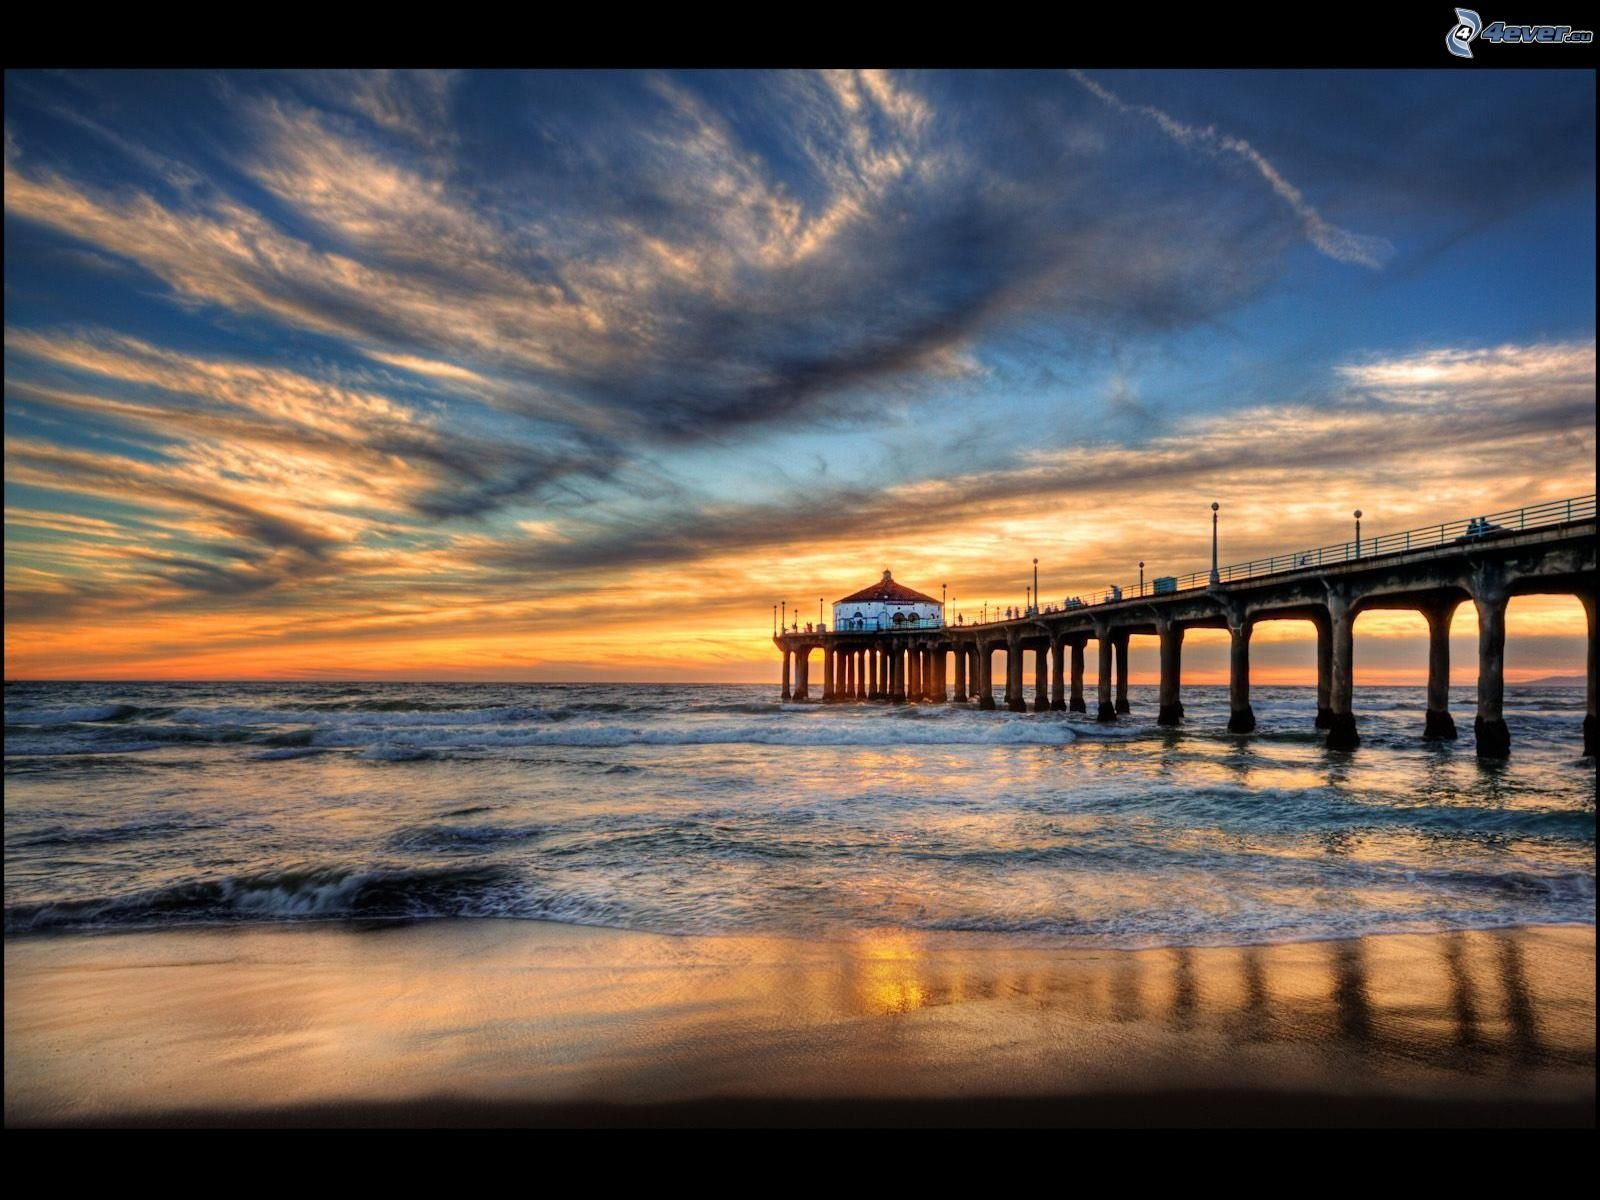 the manhattan beach pier is a pier located in manhattan beach